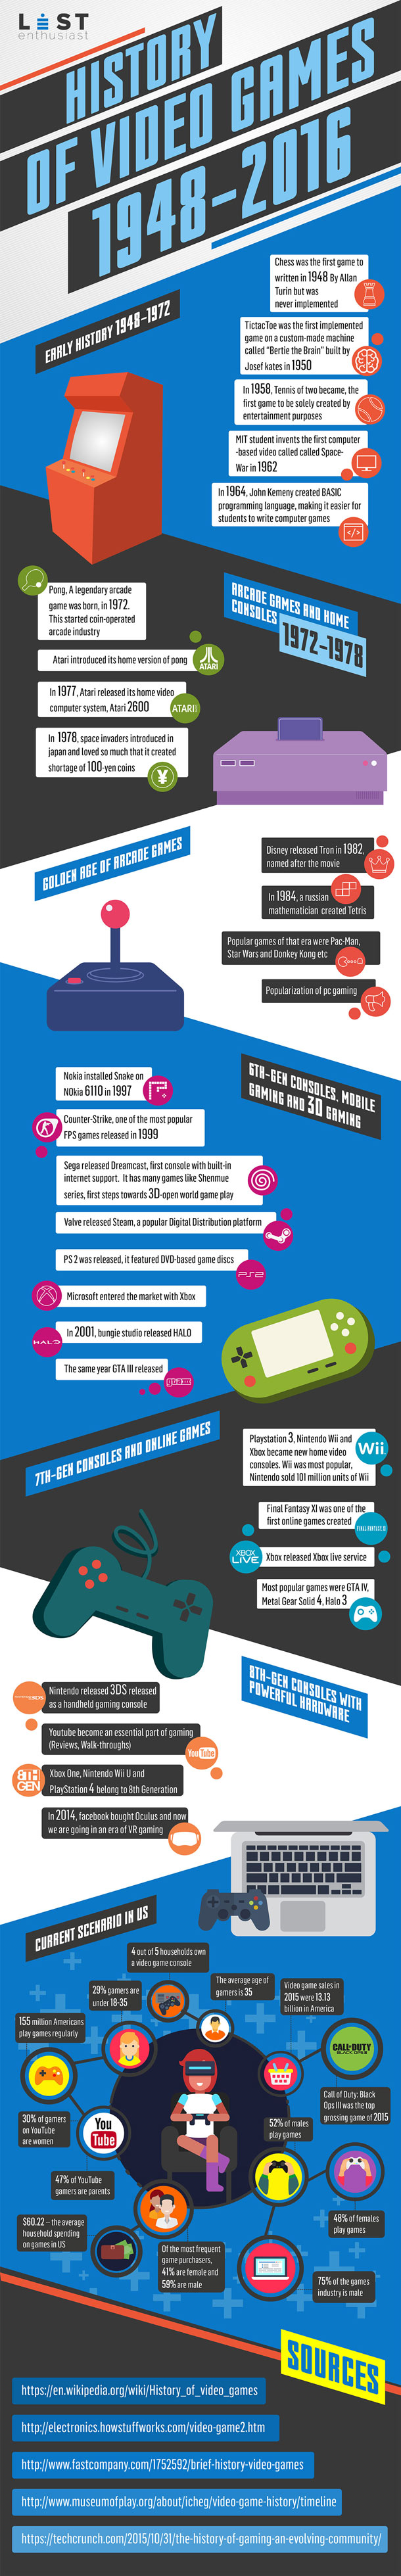 History-Of-Video-Games